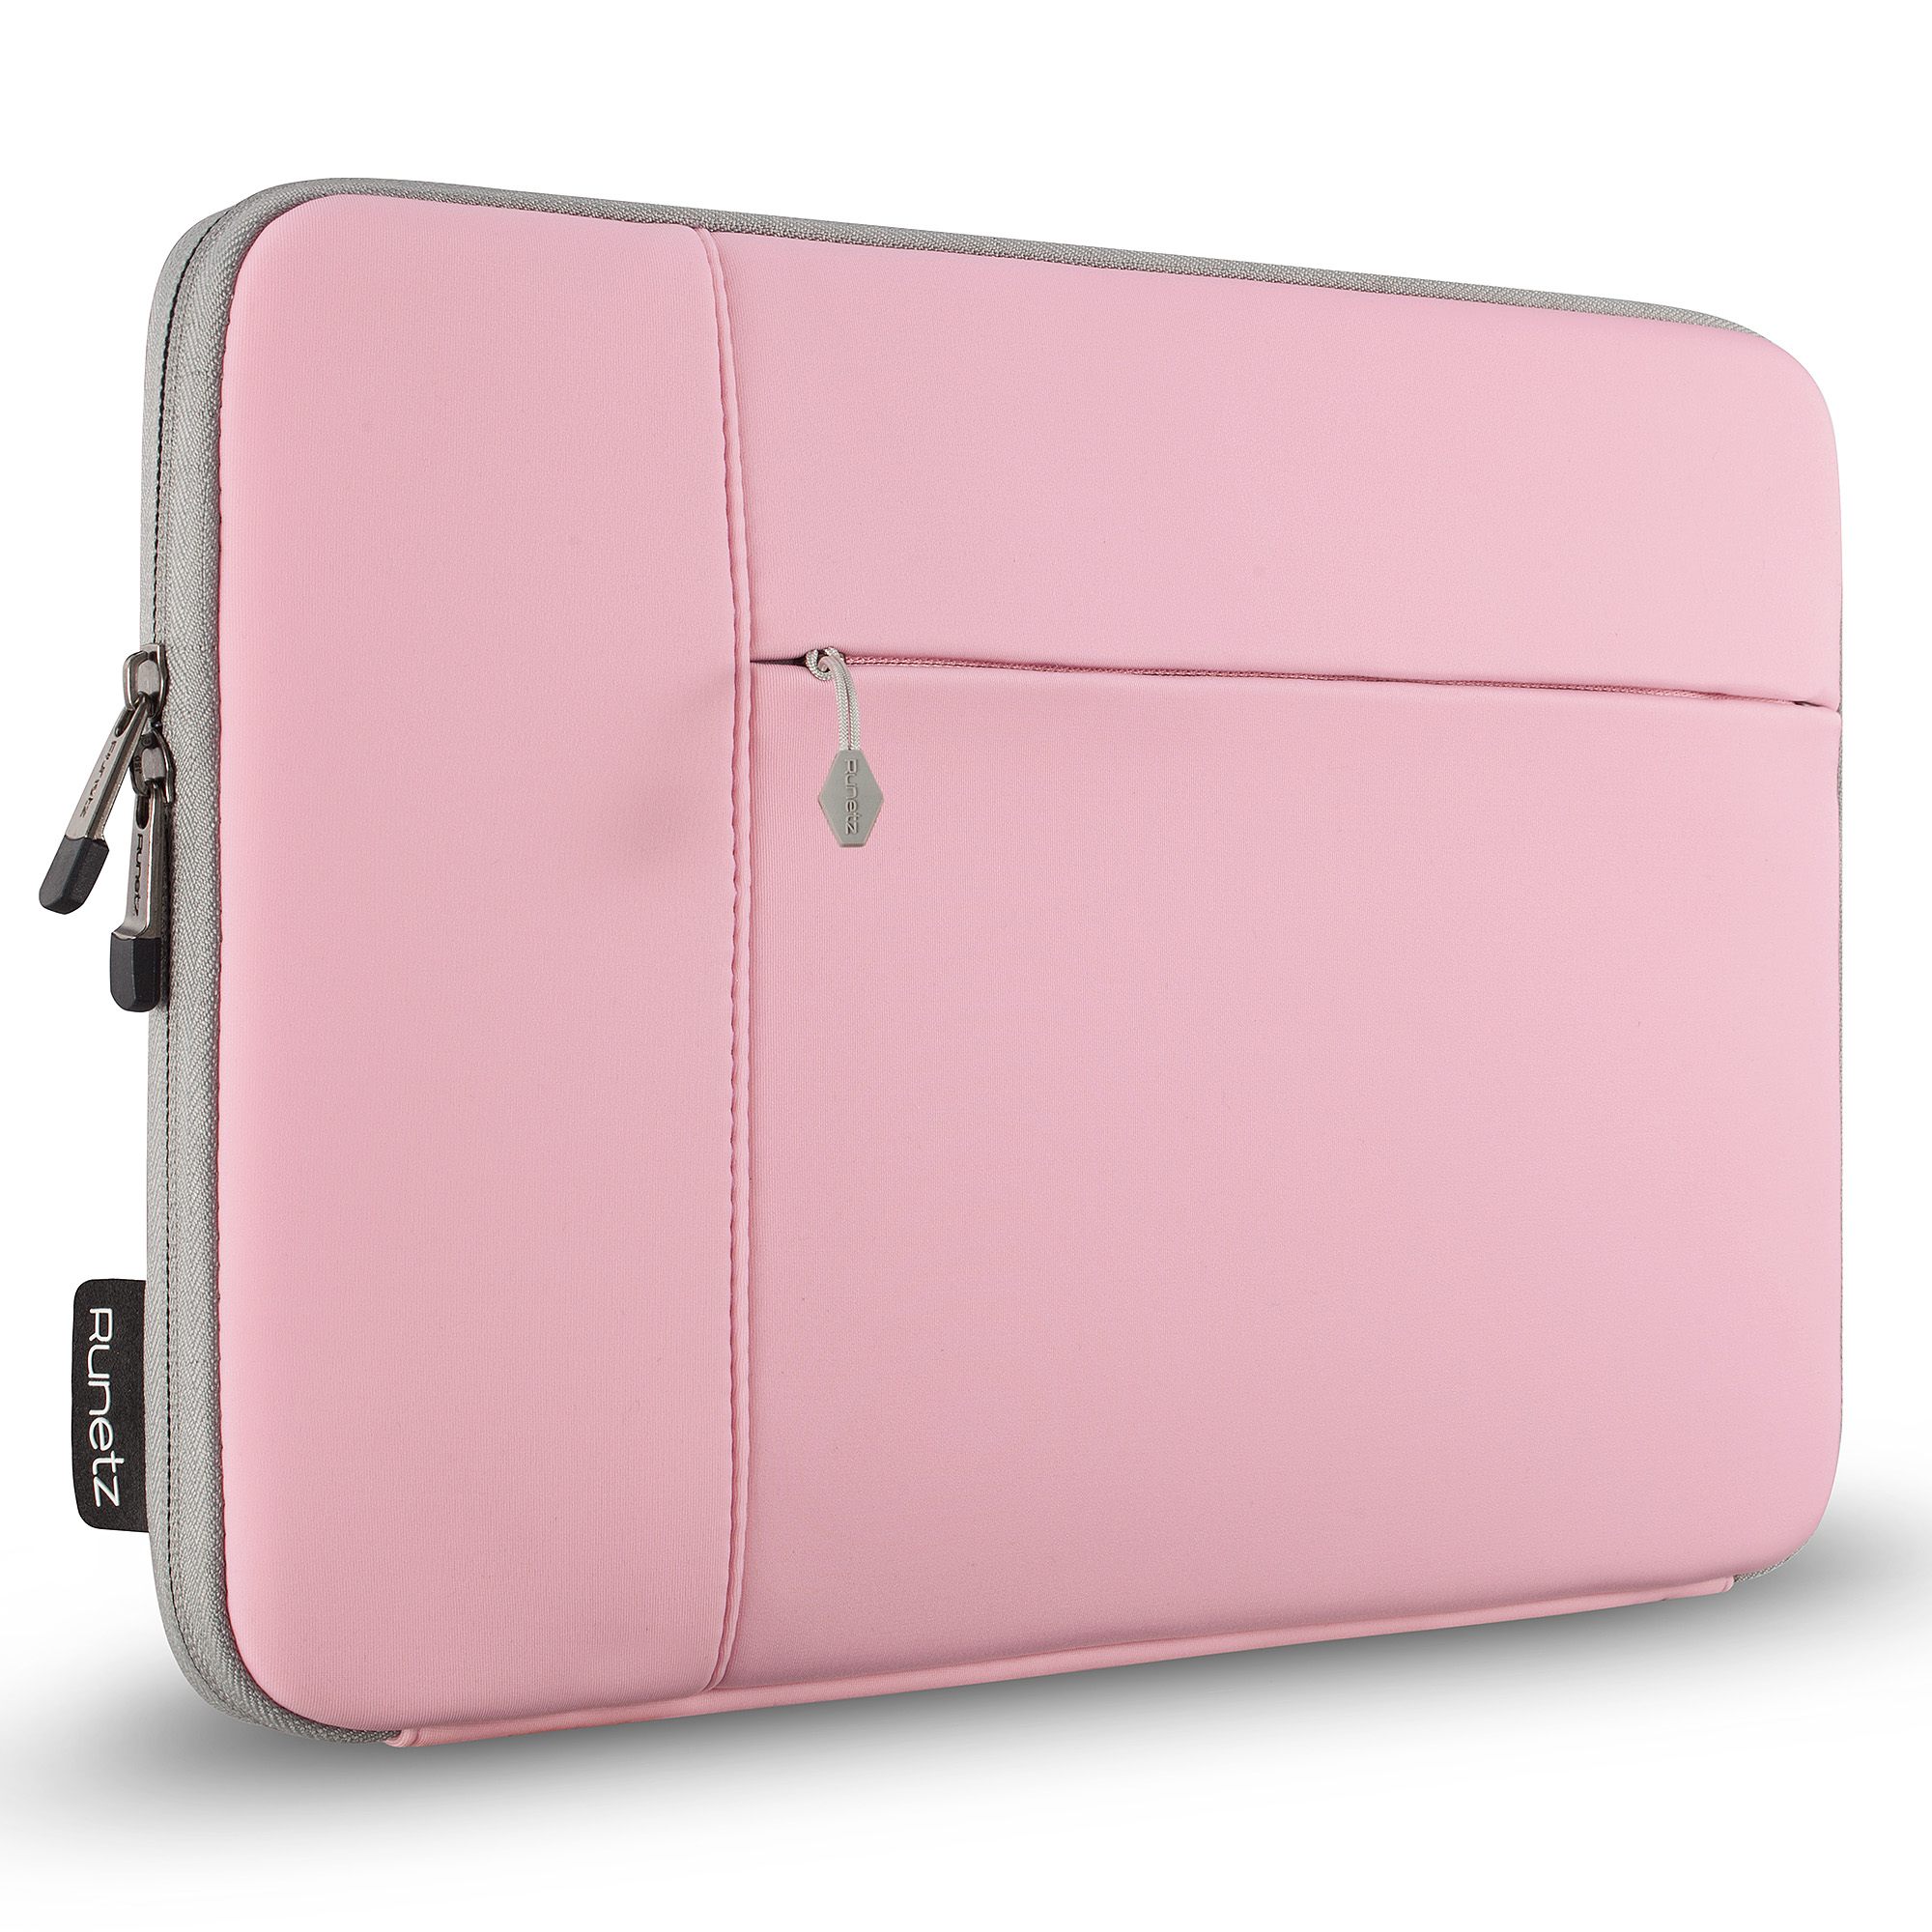 uk availability ee12d 2b65c Details about Runetz - Sleeve for MacBook 12 inch Laptop Air 11 Neoprene  Cover Case PINK/GRAY